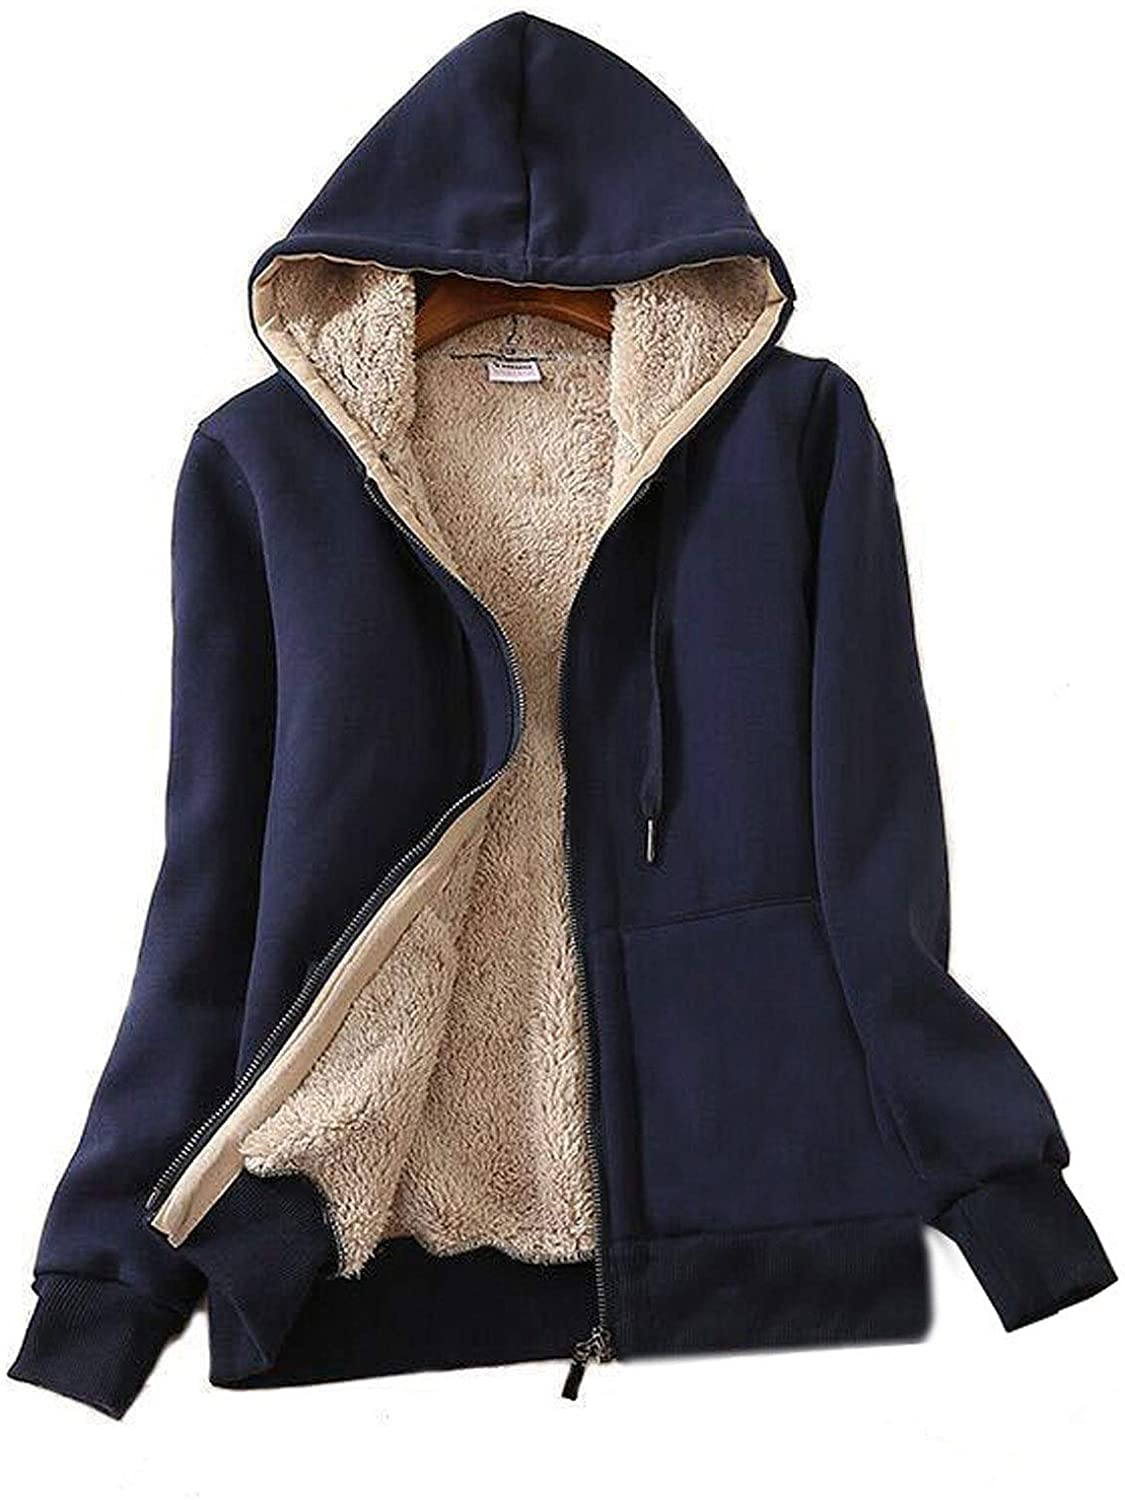 Flygo Women's Casual Winter Warm Thick Sherpa Fleece Lined Zip Up Hooded Sweatshirt Jacket